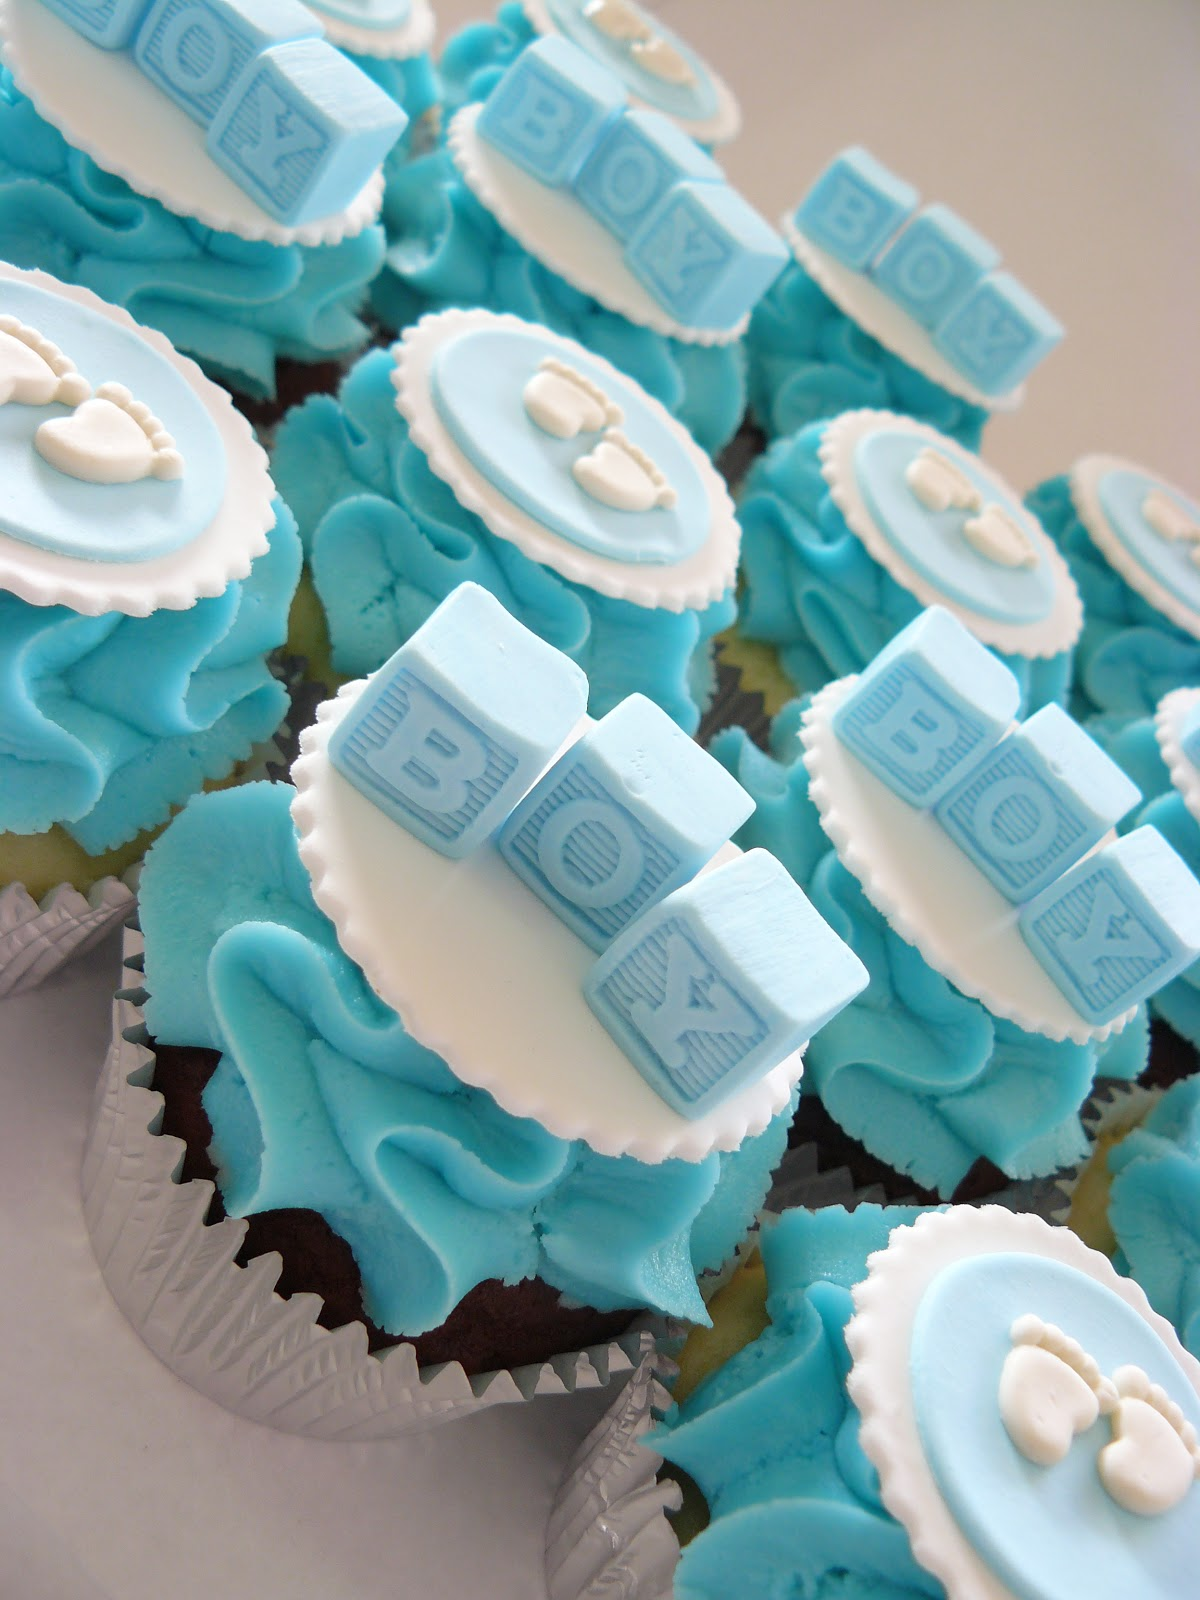 the cup cake taste brisbane cupcakes baby shower cupcakes